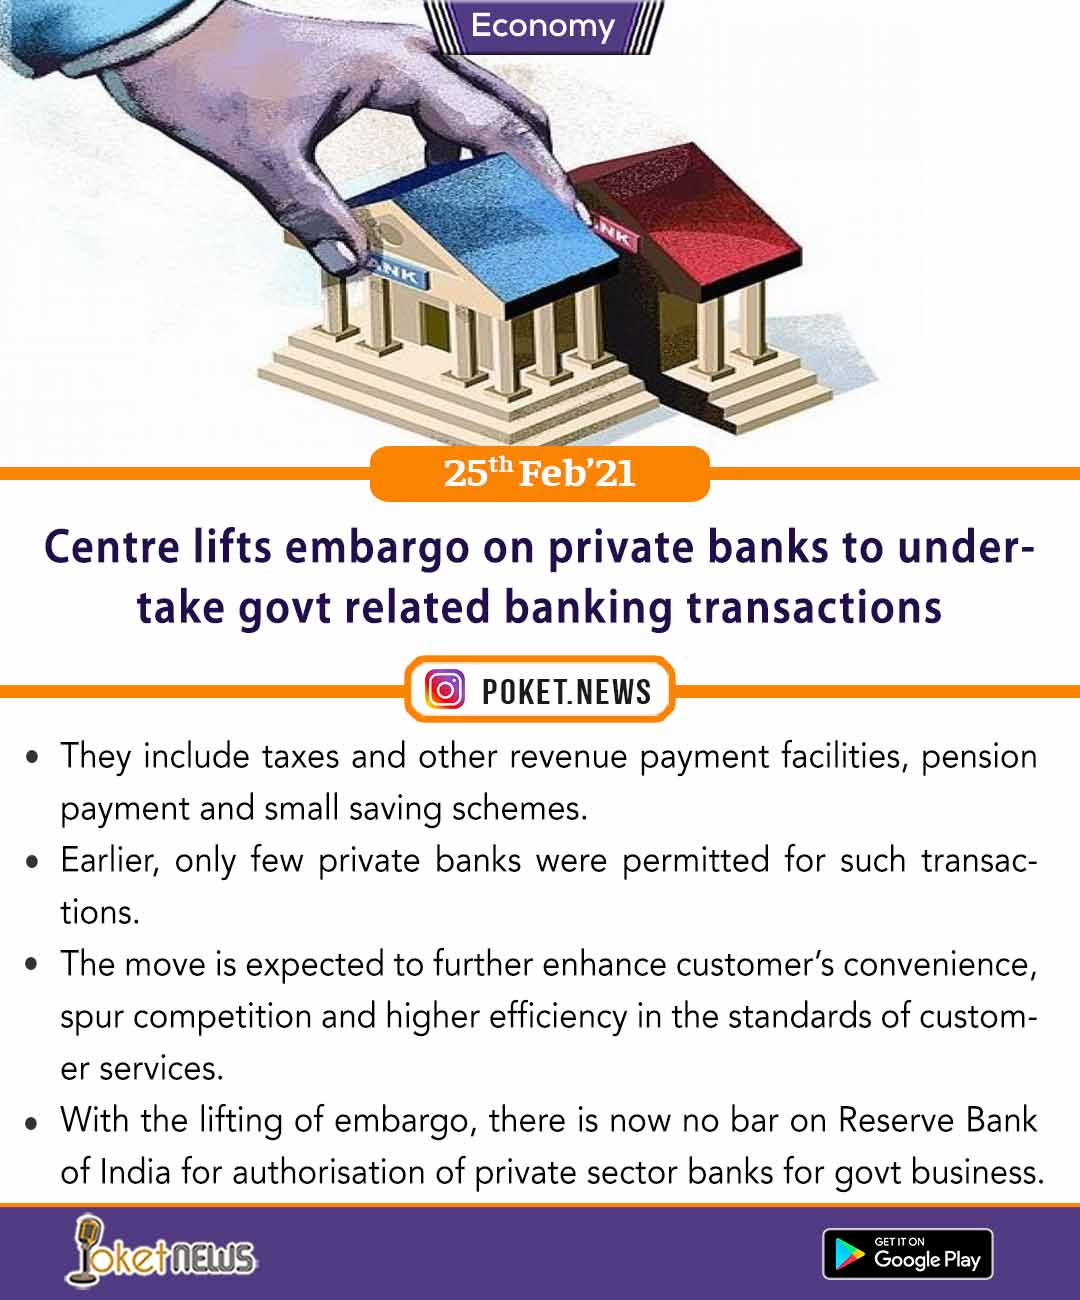 Centre lifts embargo on private banks to undertake govt related banking transactions